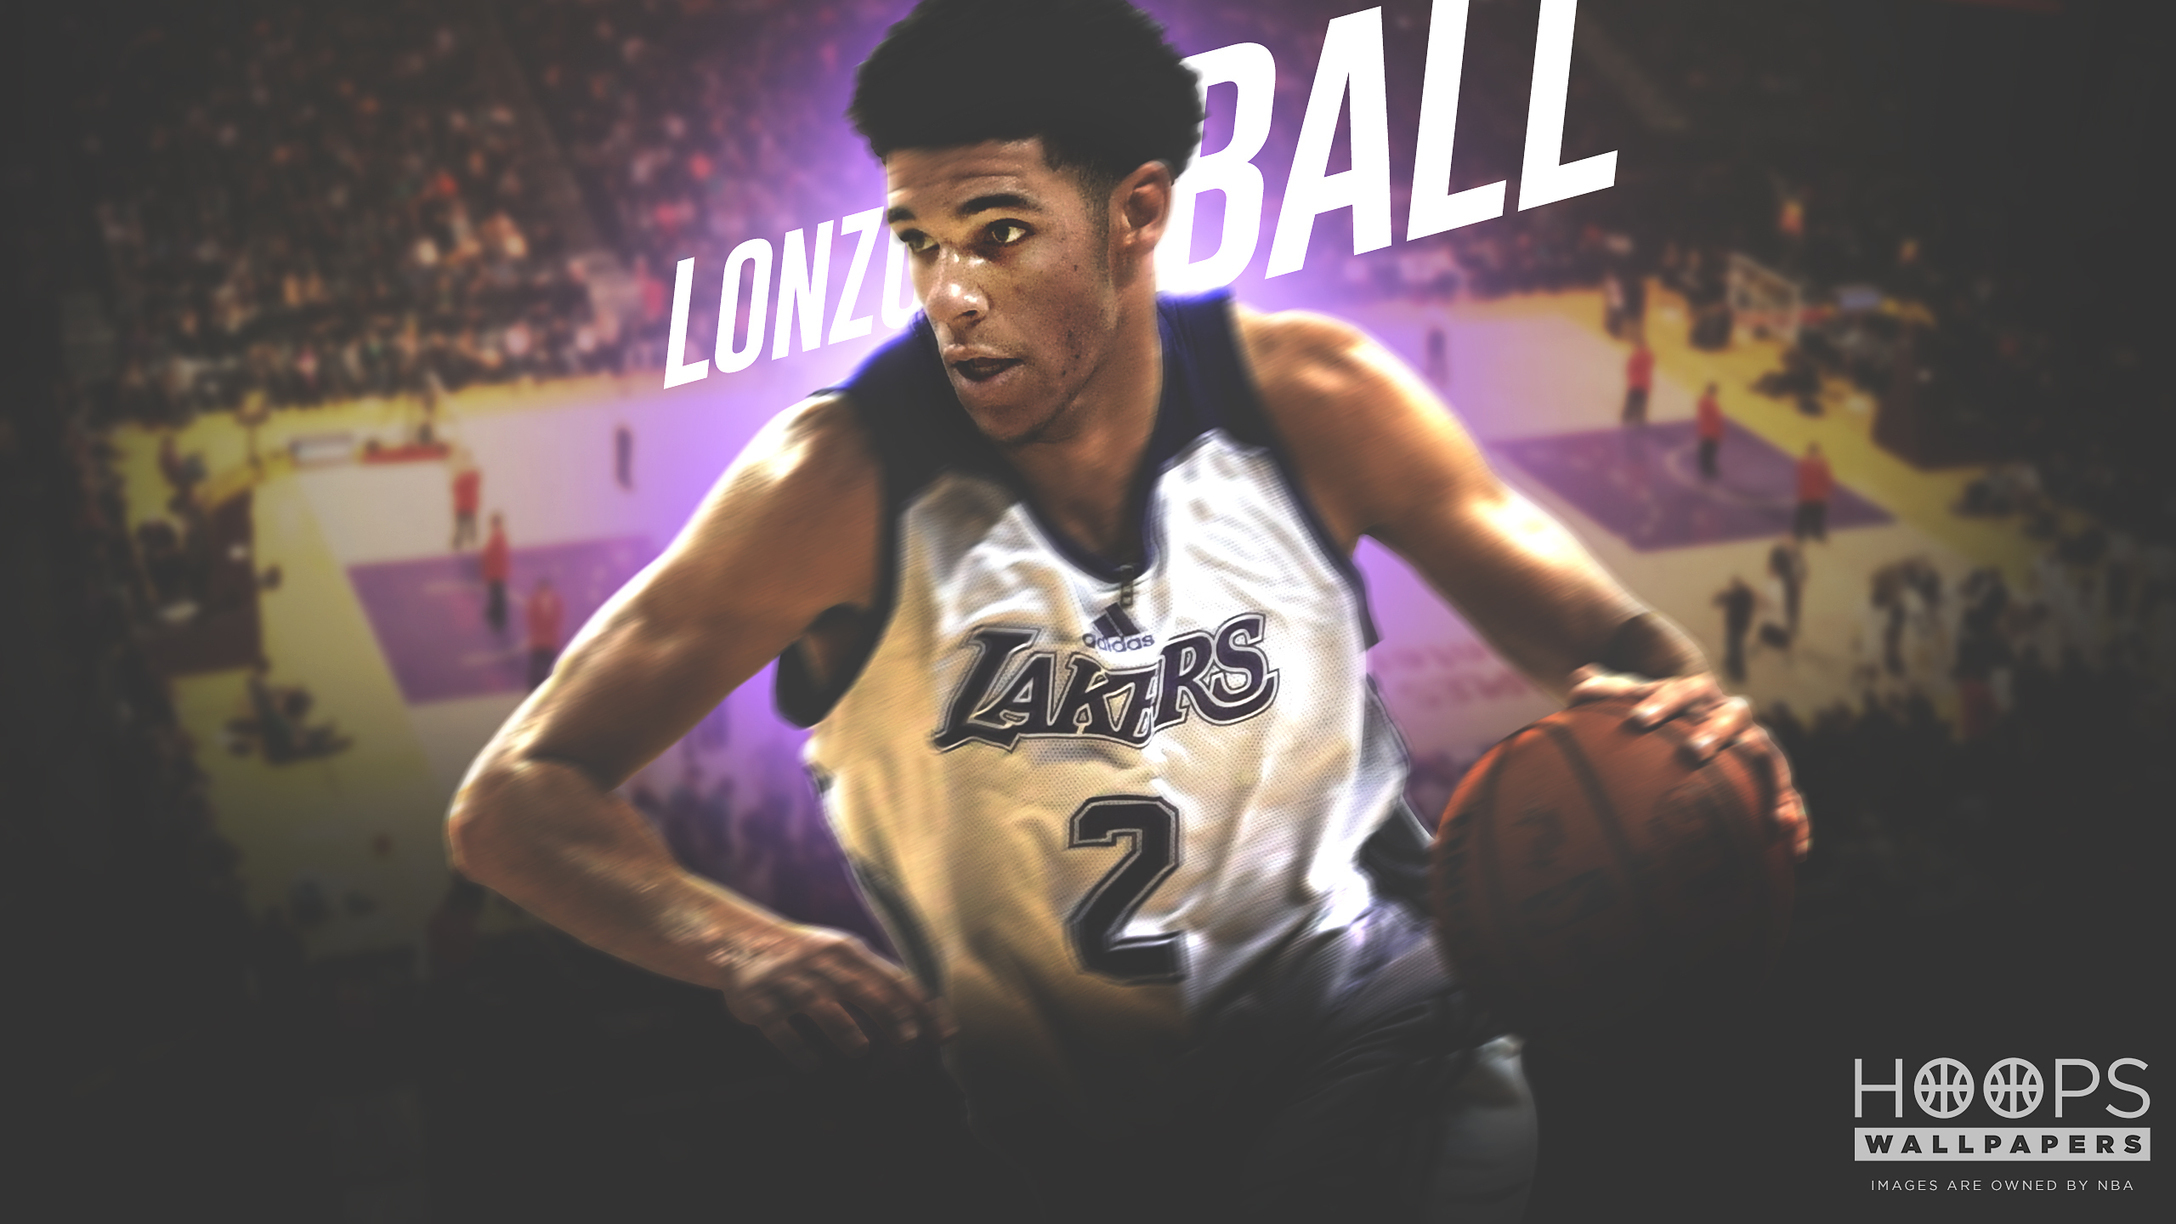 Lonzo Ball HD Wallpapers All about Wal 2176x1224